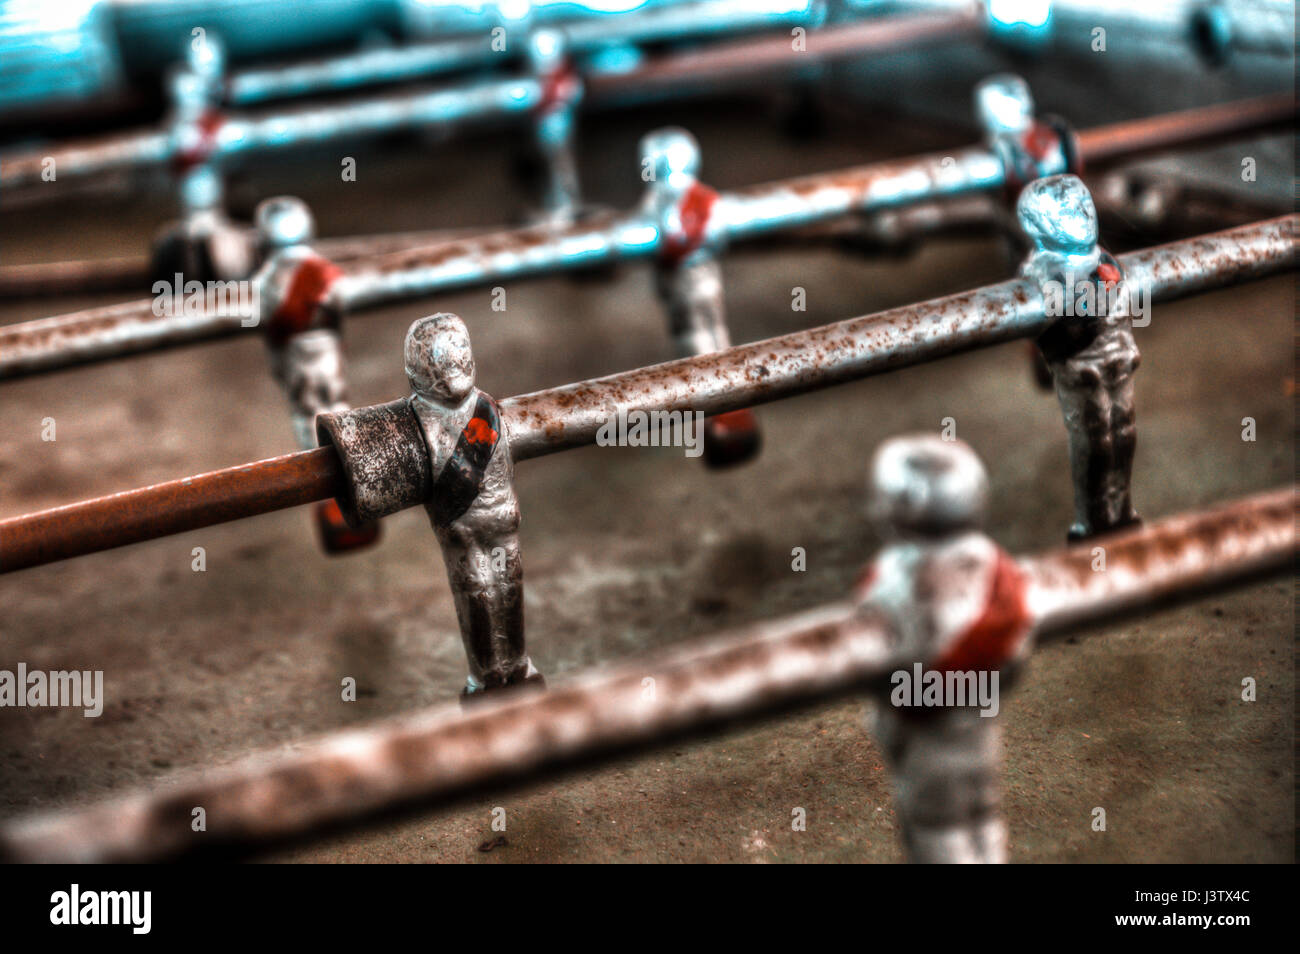 Old table football kicker with rusty characters - Stock Image